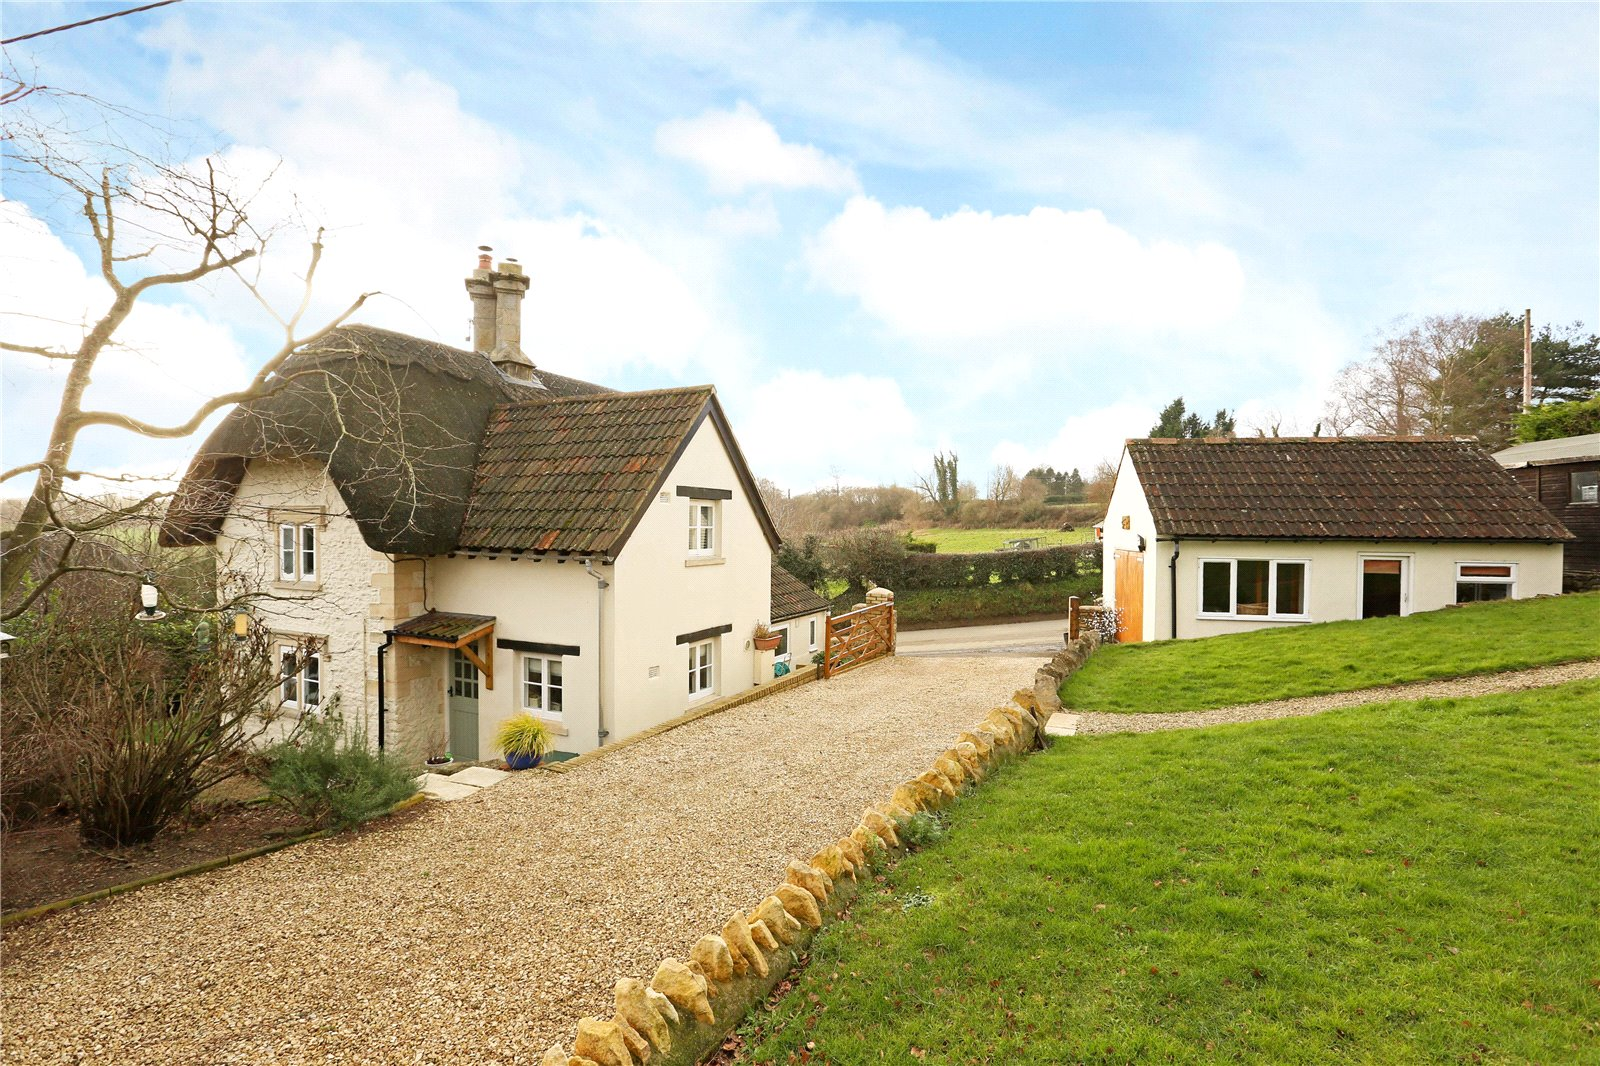 Dovetail Cottage, 4 Ratford Hill, Ratford, Calne, Wiltshire